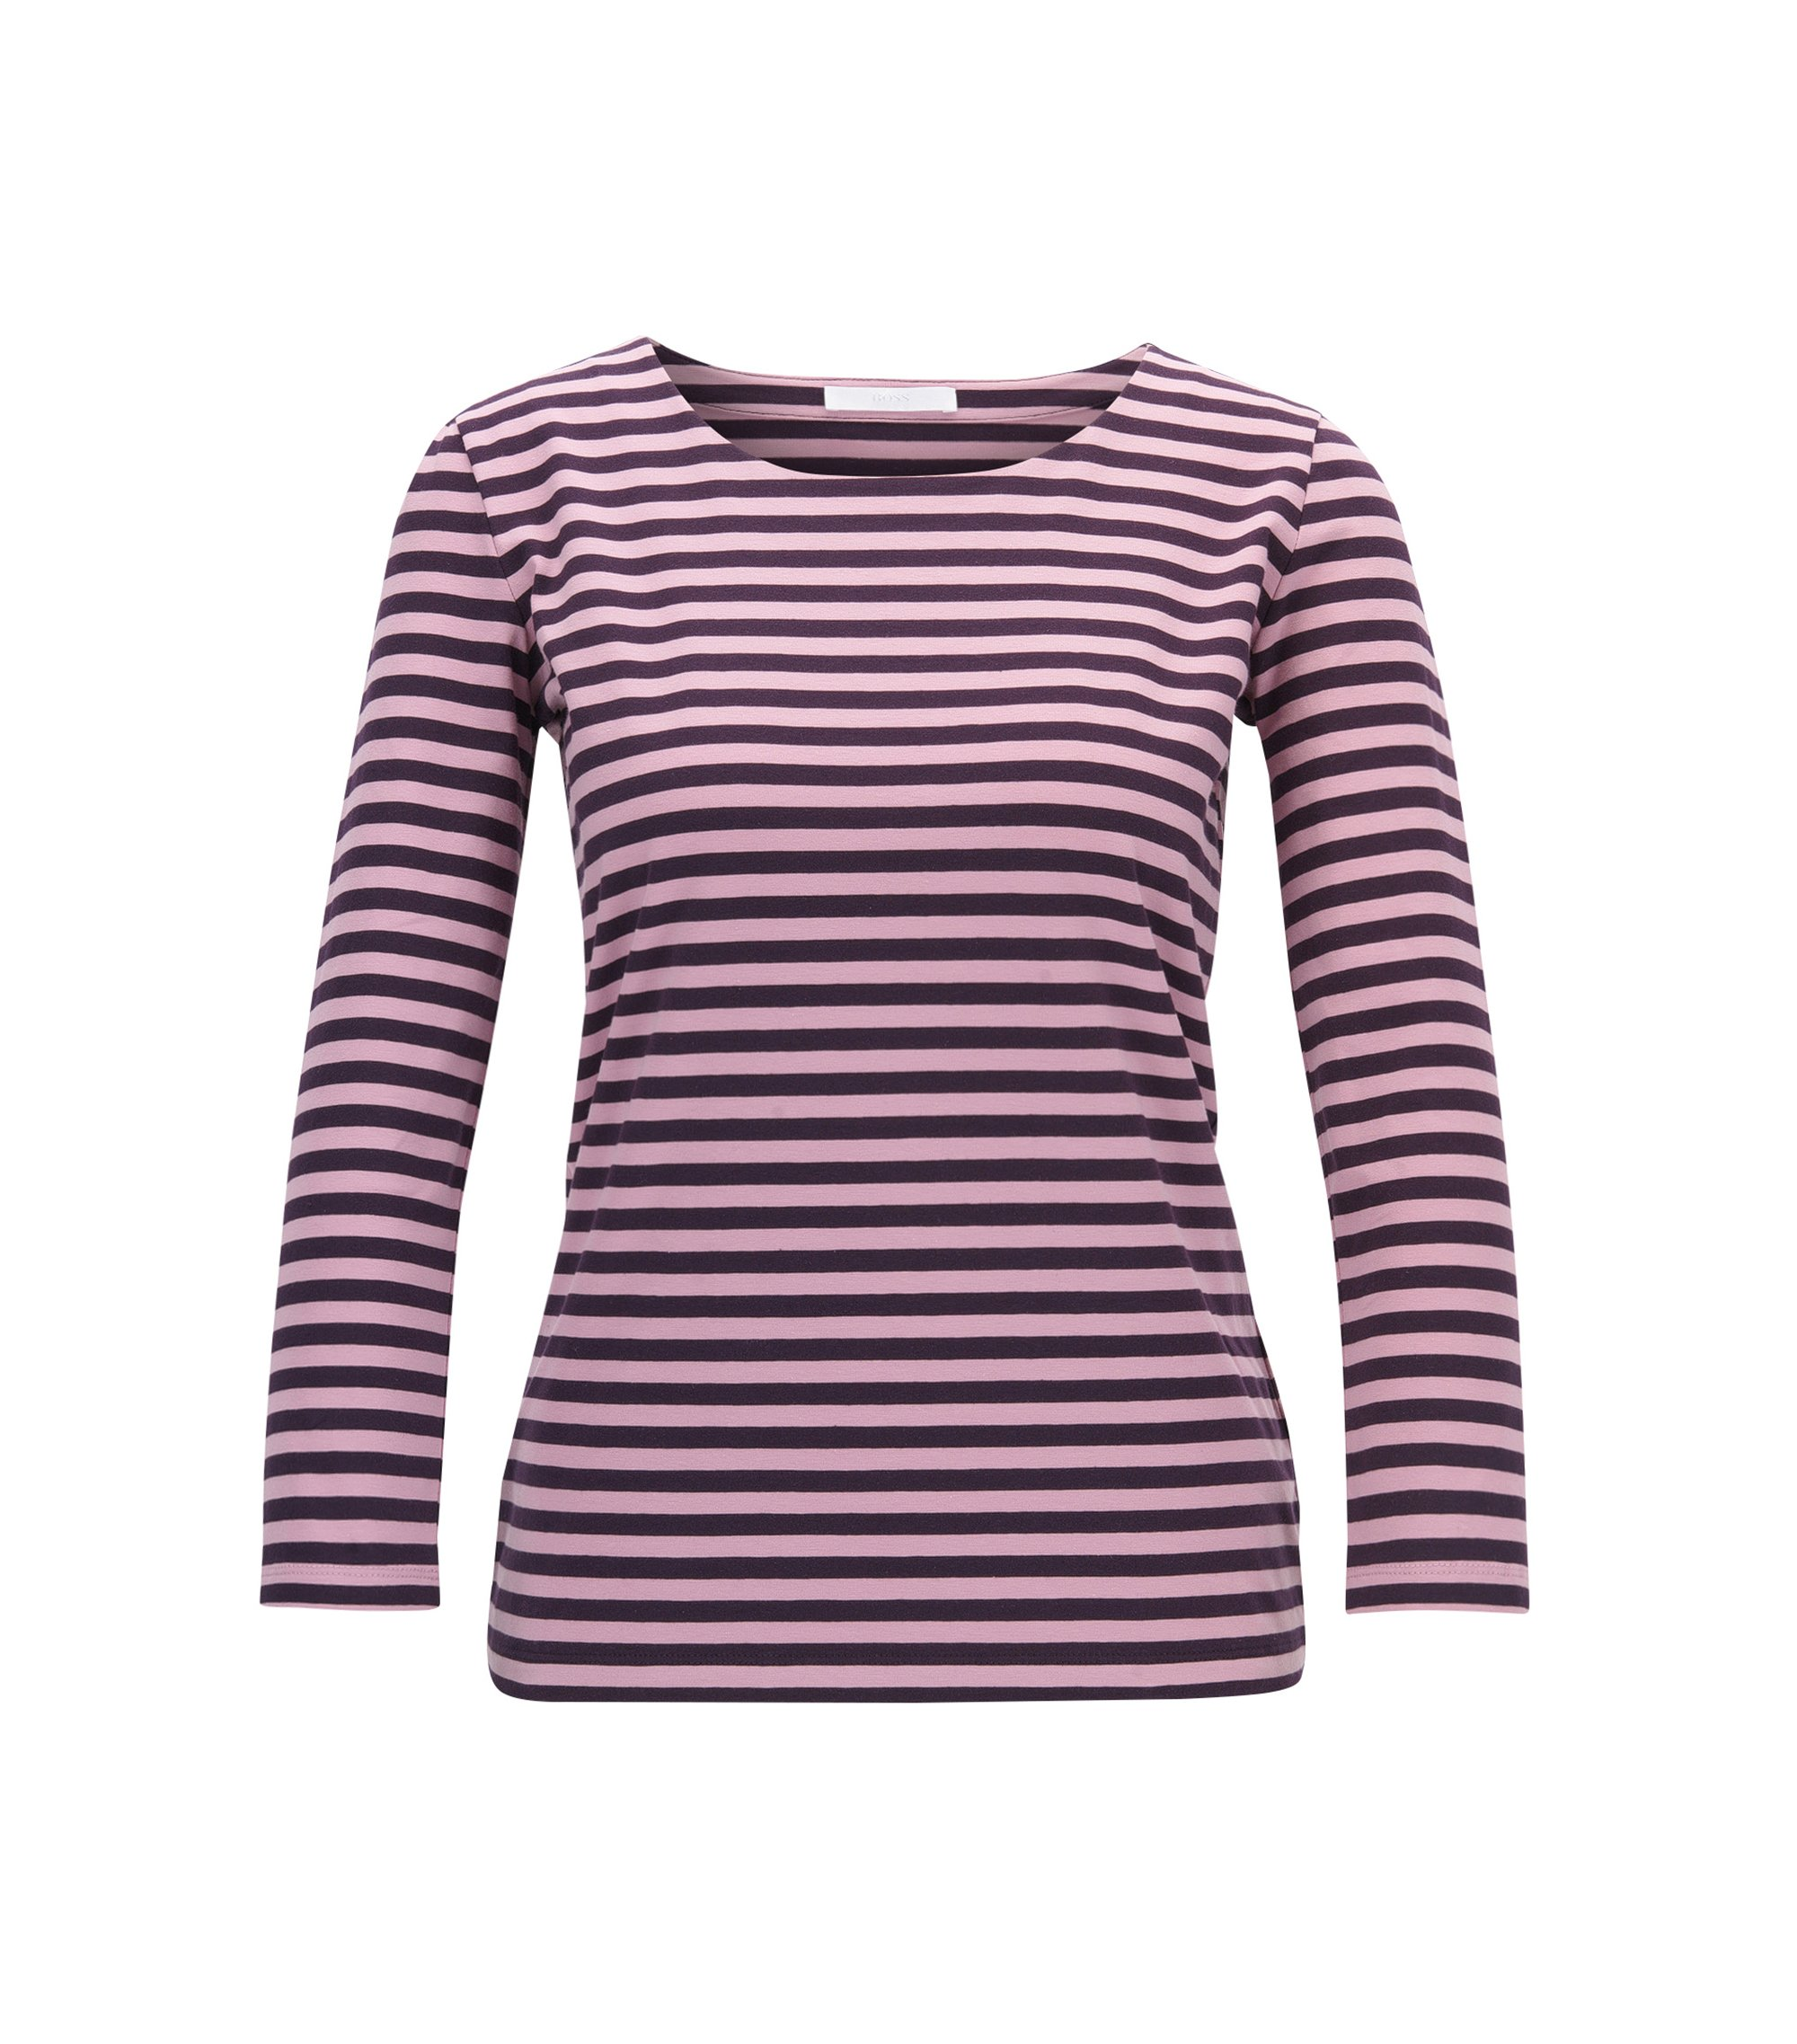 T-shirt Regular Fit en jersey single de coton stretch, Fantaisie